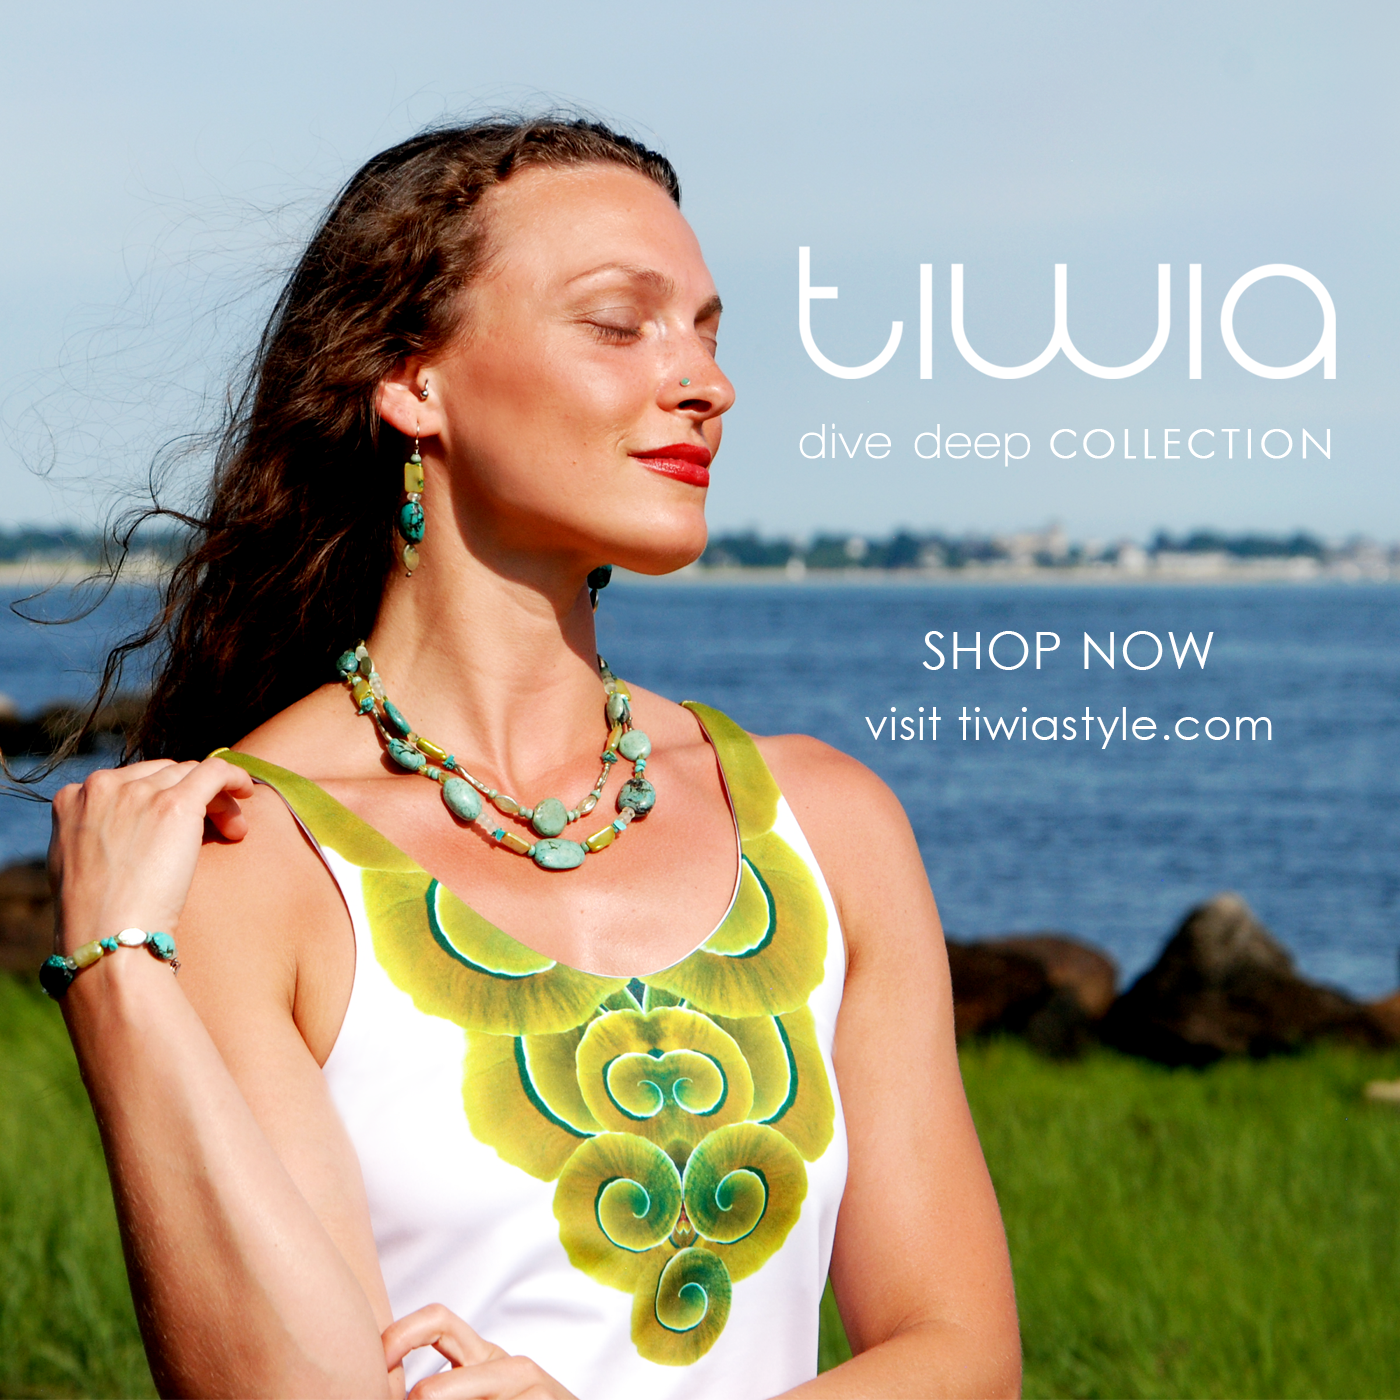 tiwia dive deep ad instagram emily close scoop neck jewelry.png